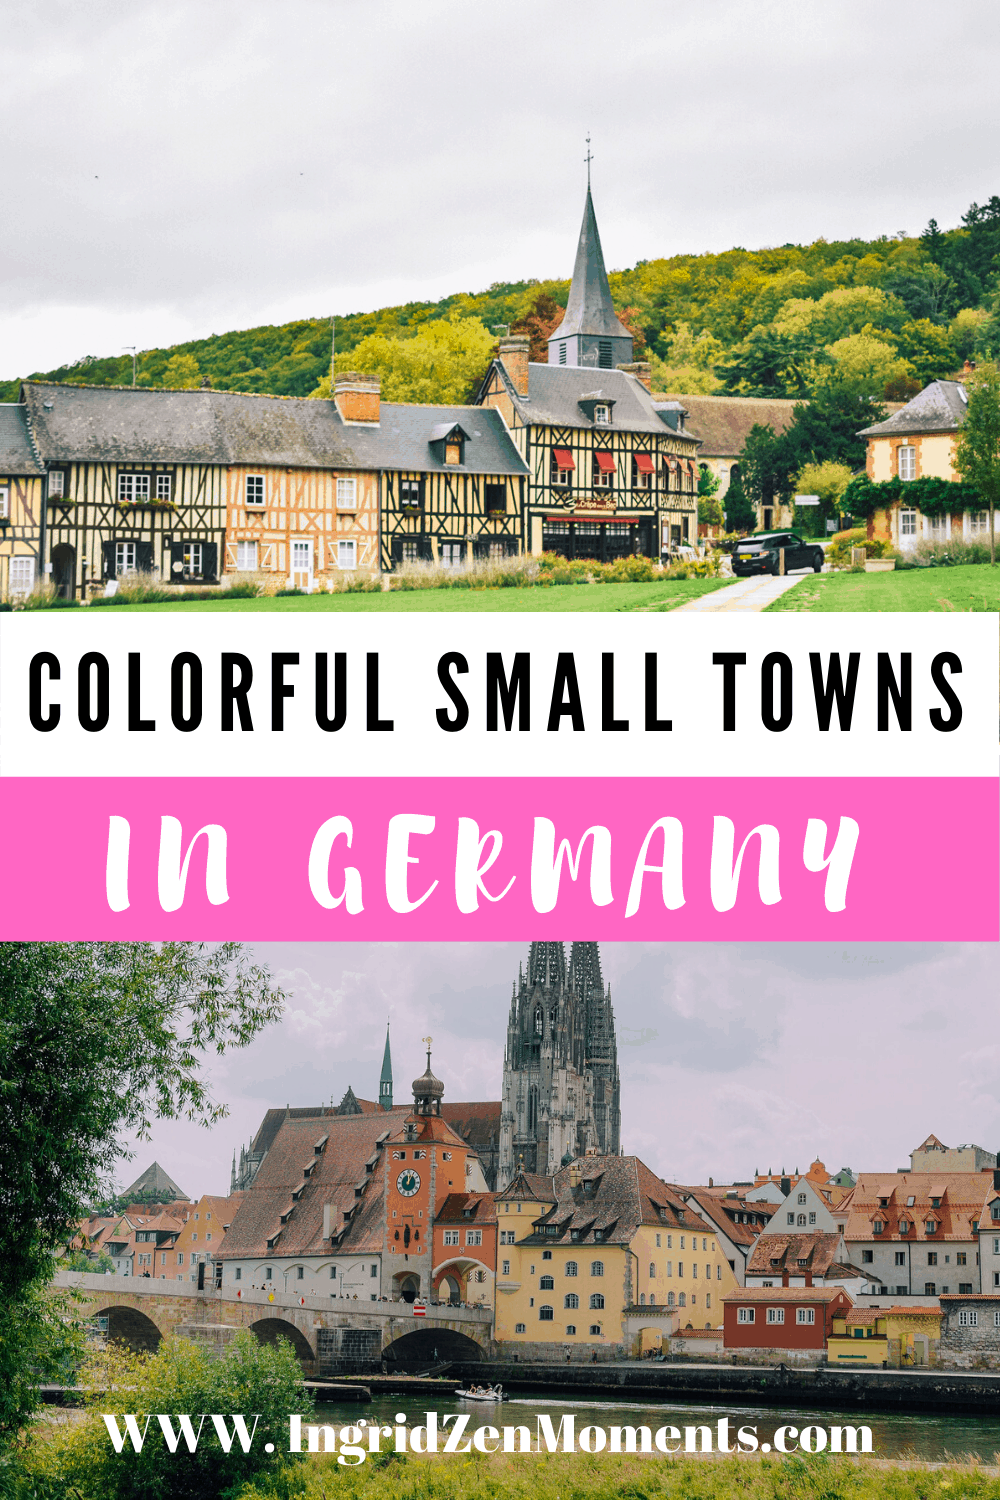 PRETTIEST SMALL GERMAN VILLAGES perfect for your Germany trip. Germany traveling which will make you fall in love. Make your way along Germany castles, colorful villages, hidden gems in Germany. Germany travel destinations recommended by travel bloggers. #germany #travel #villages #hidden #colorful